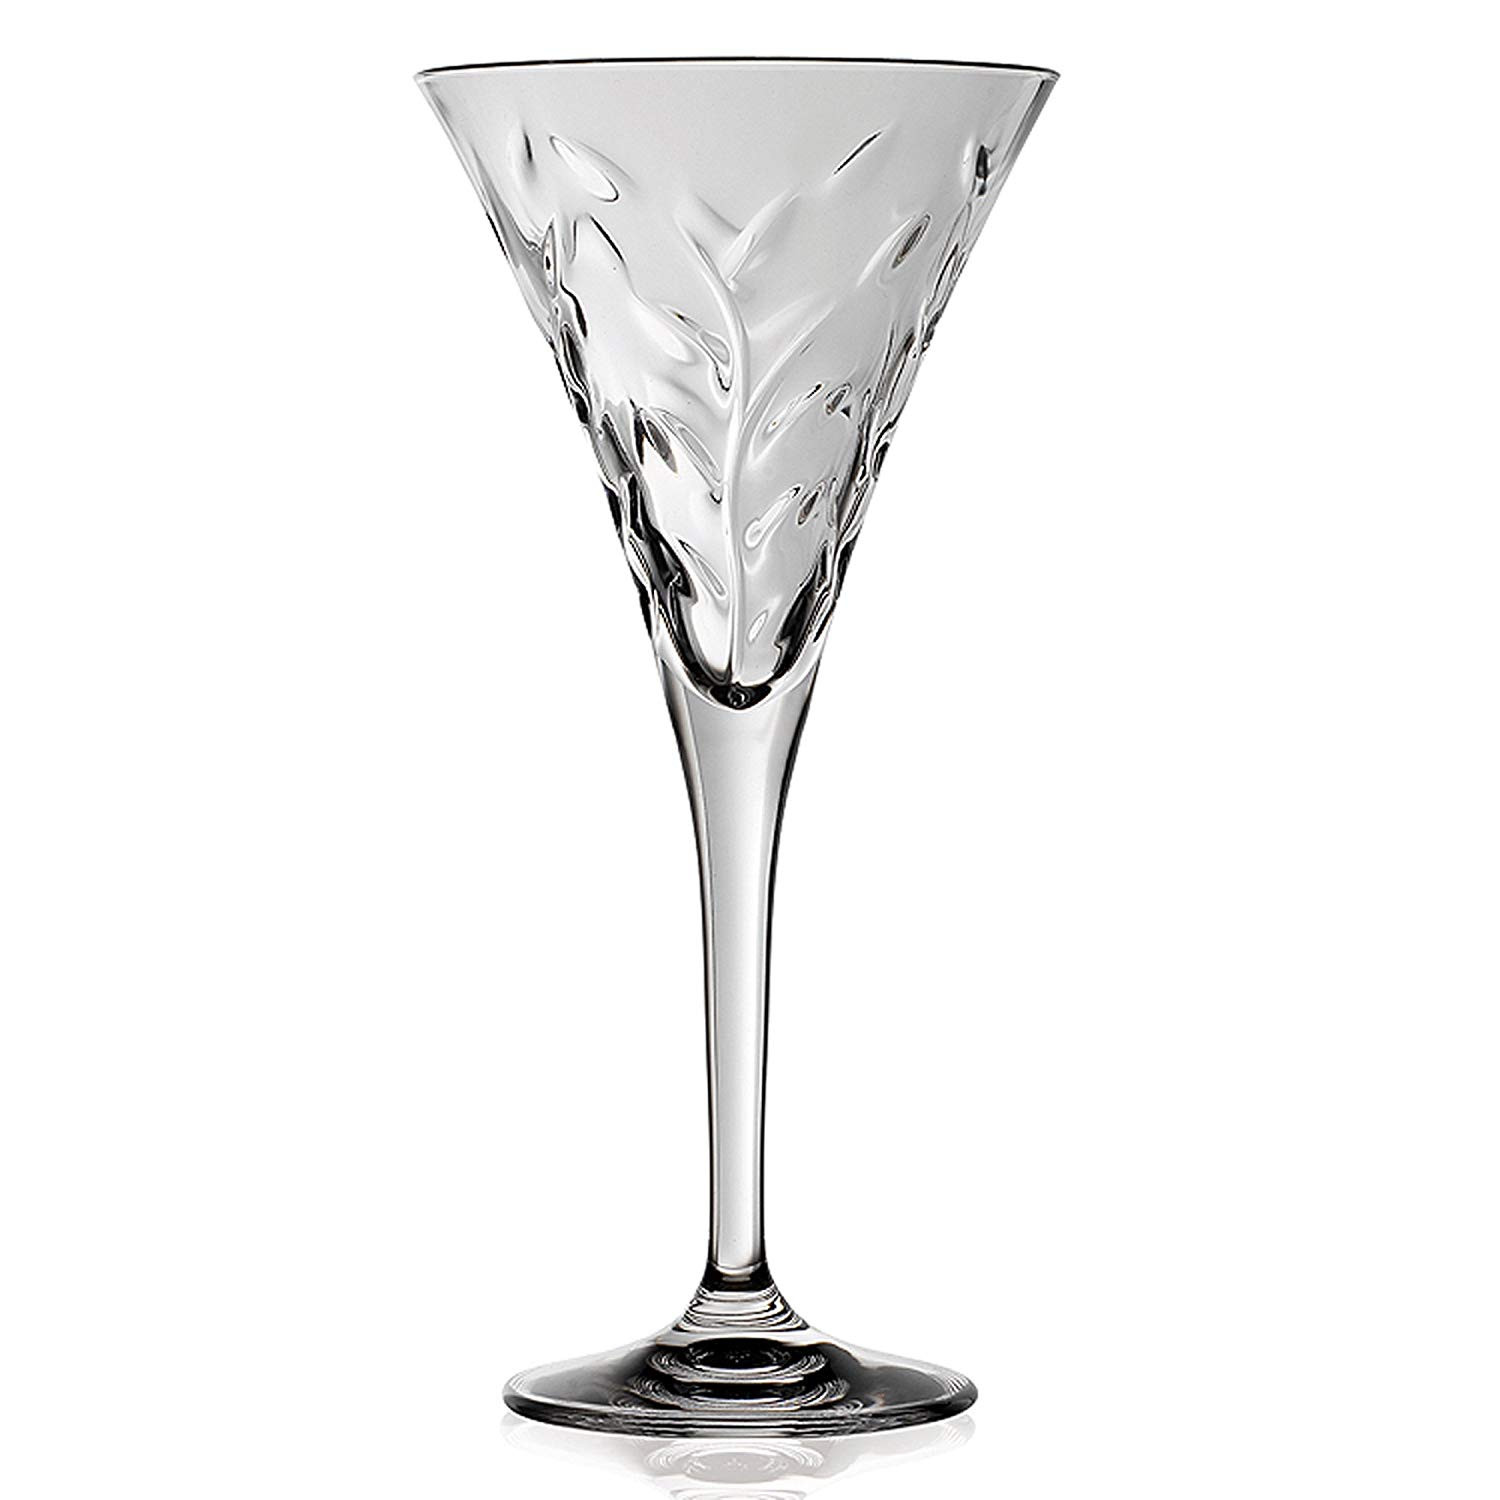 16 Wonderful Rcr Crystal Vase Price